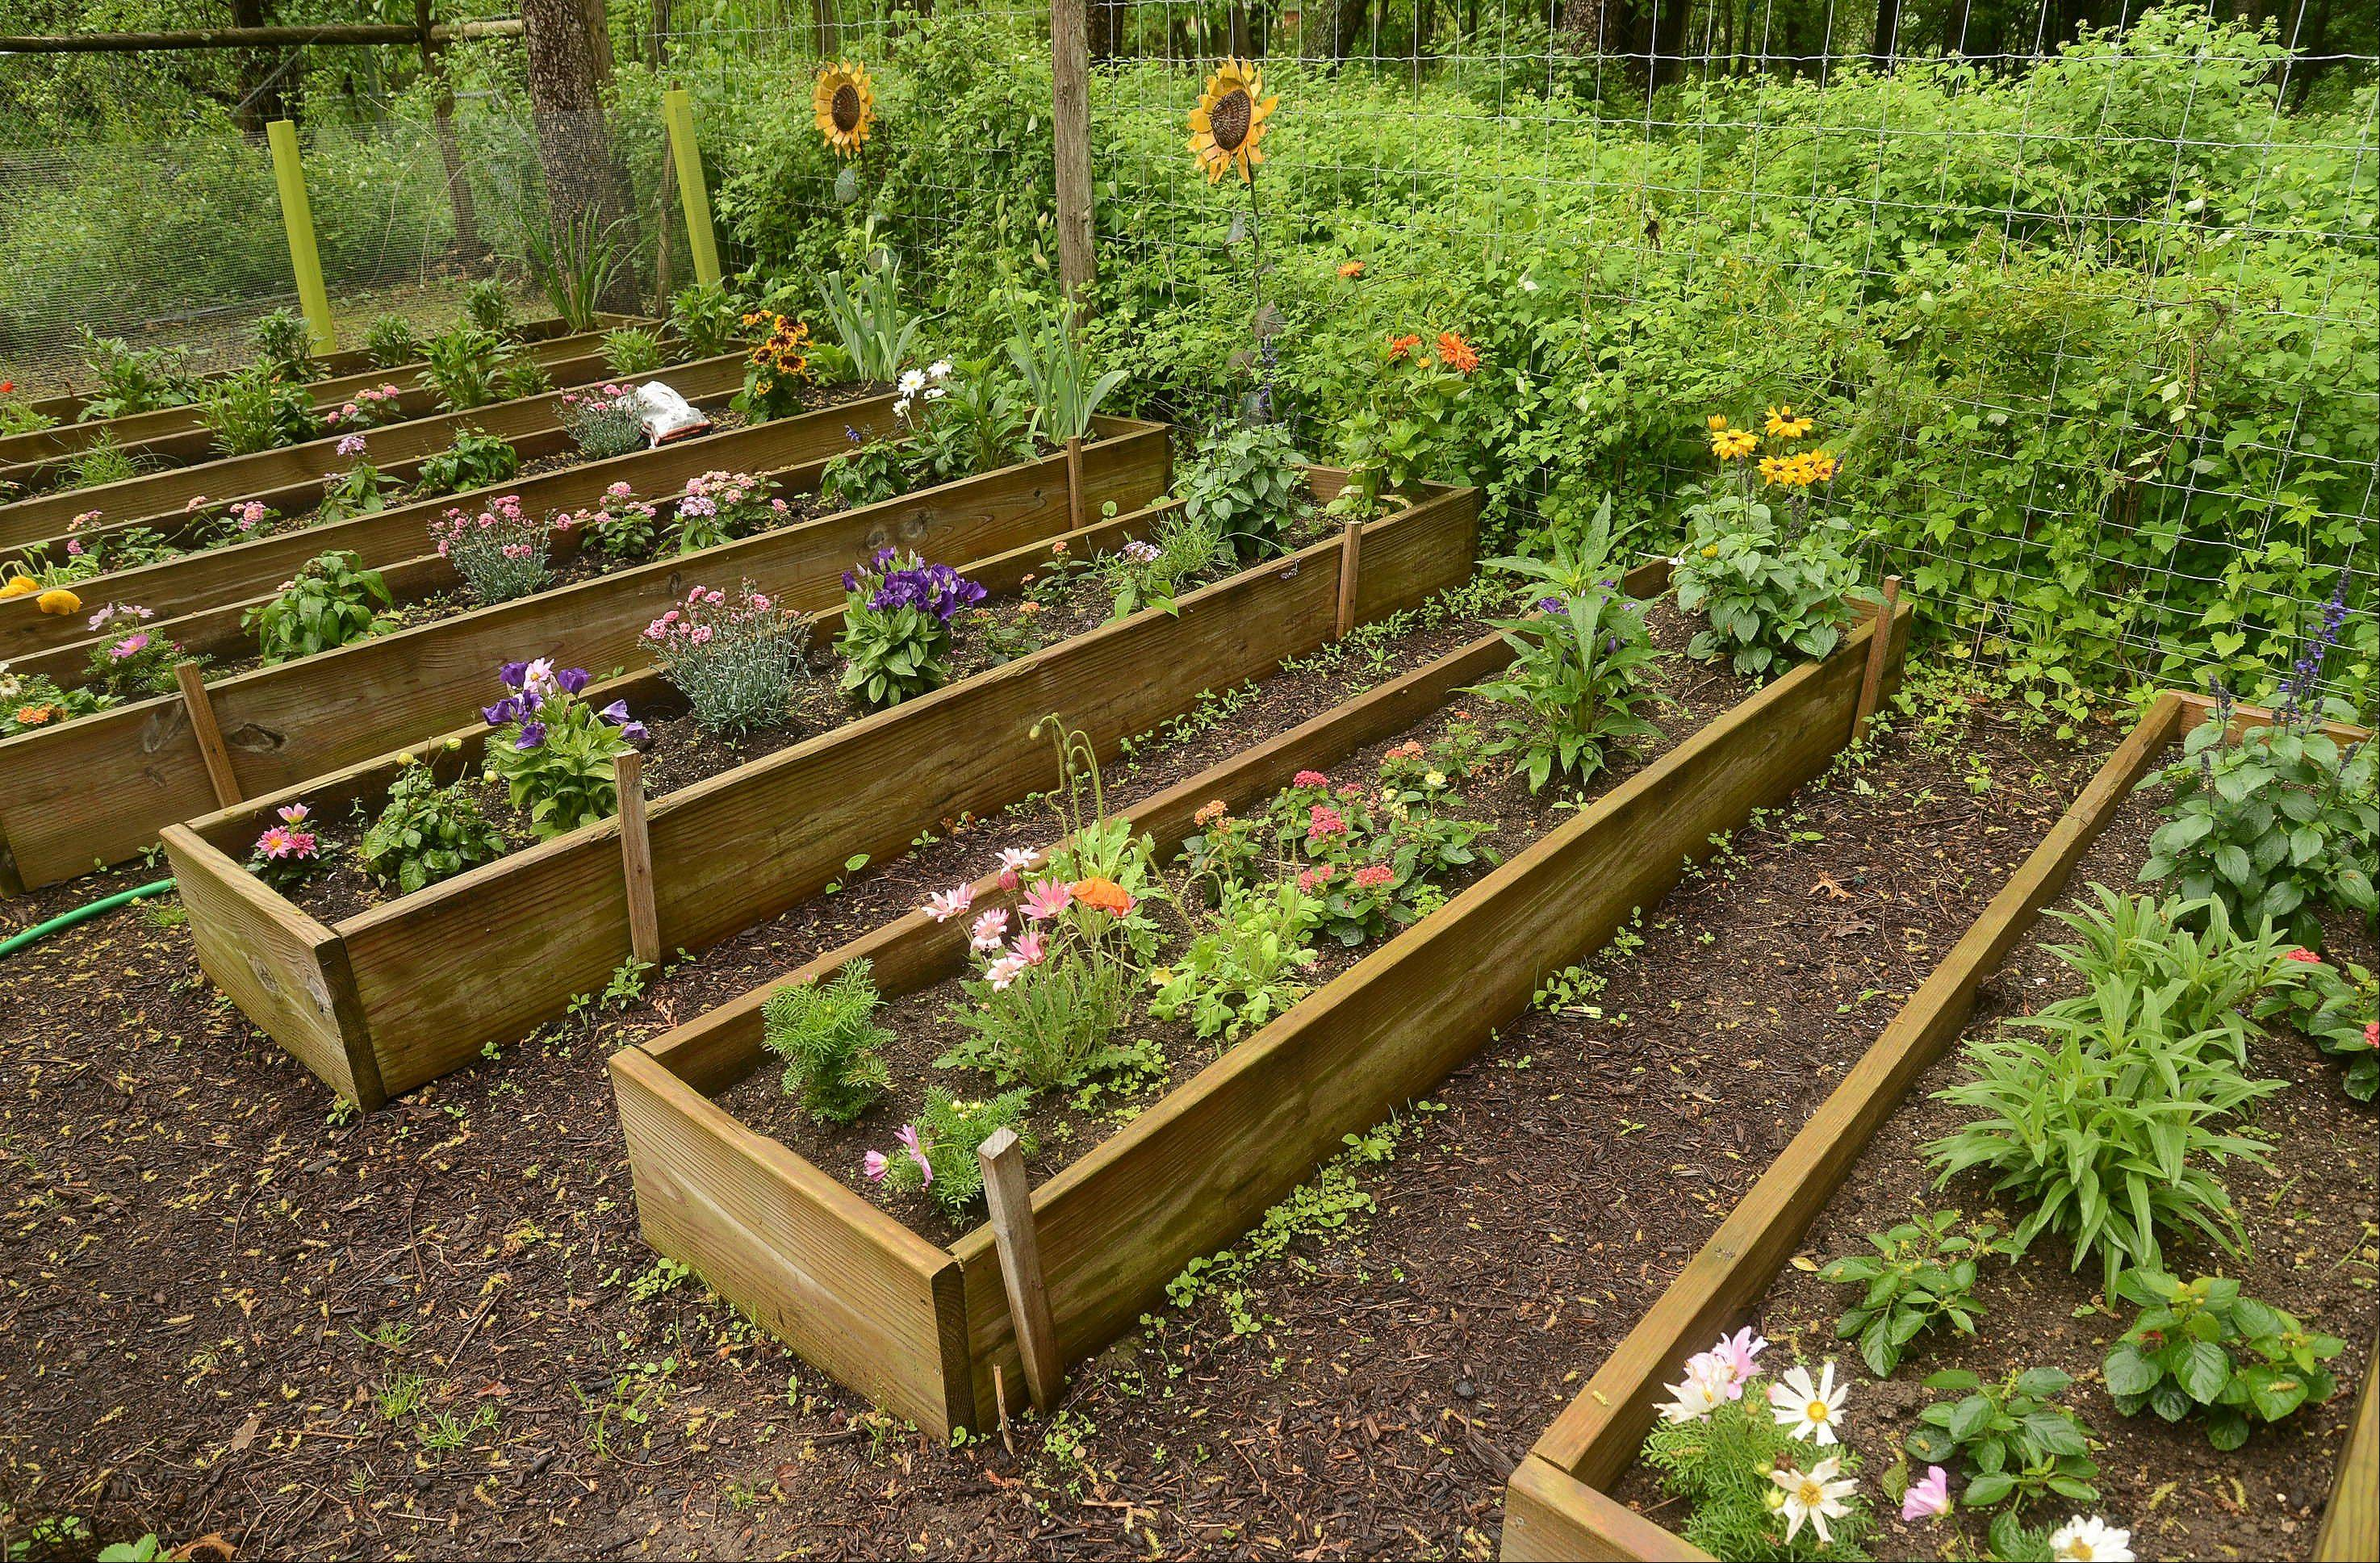 The cutting garden is one area the homeowner cares for herself.